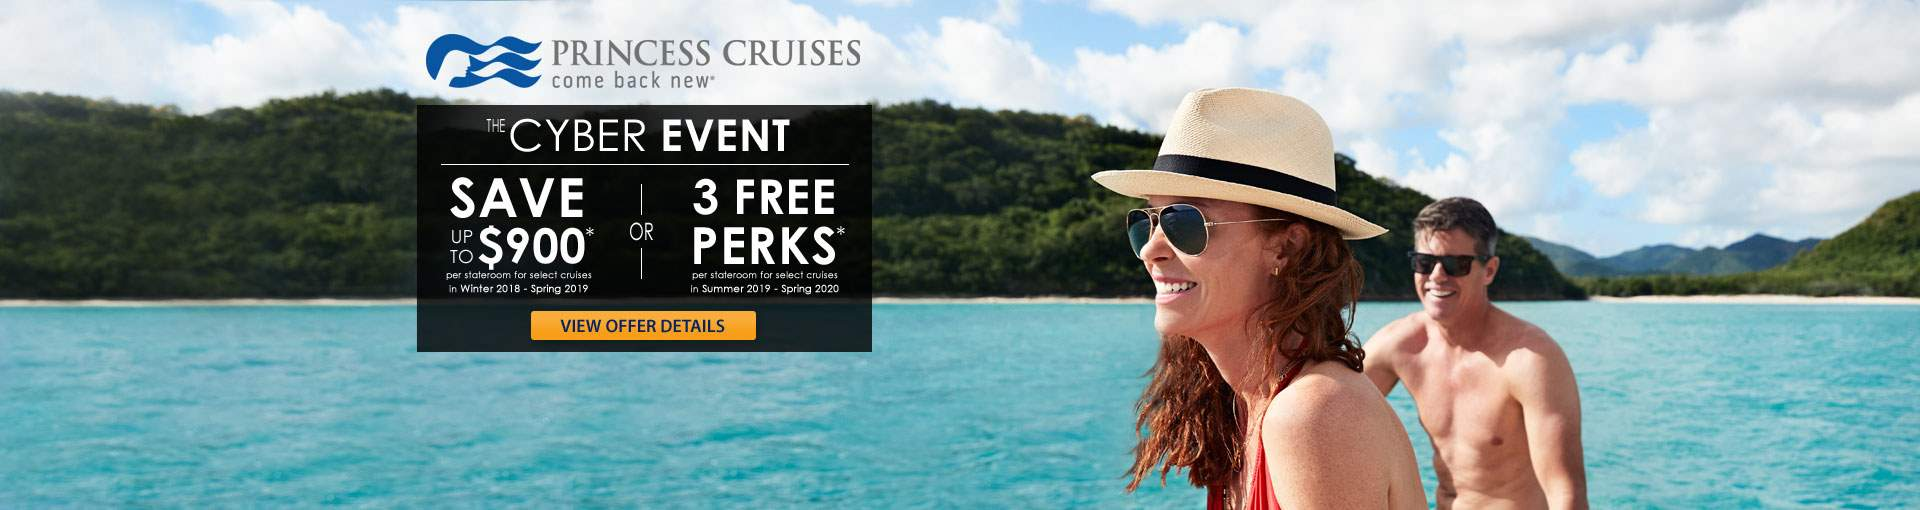 Princess Cruises Cyber Event Cruise Sale